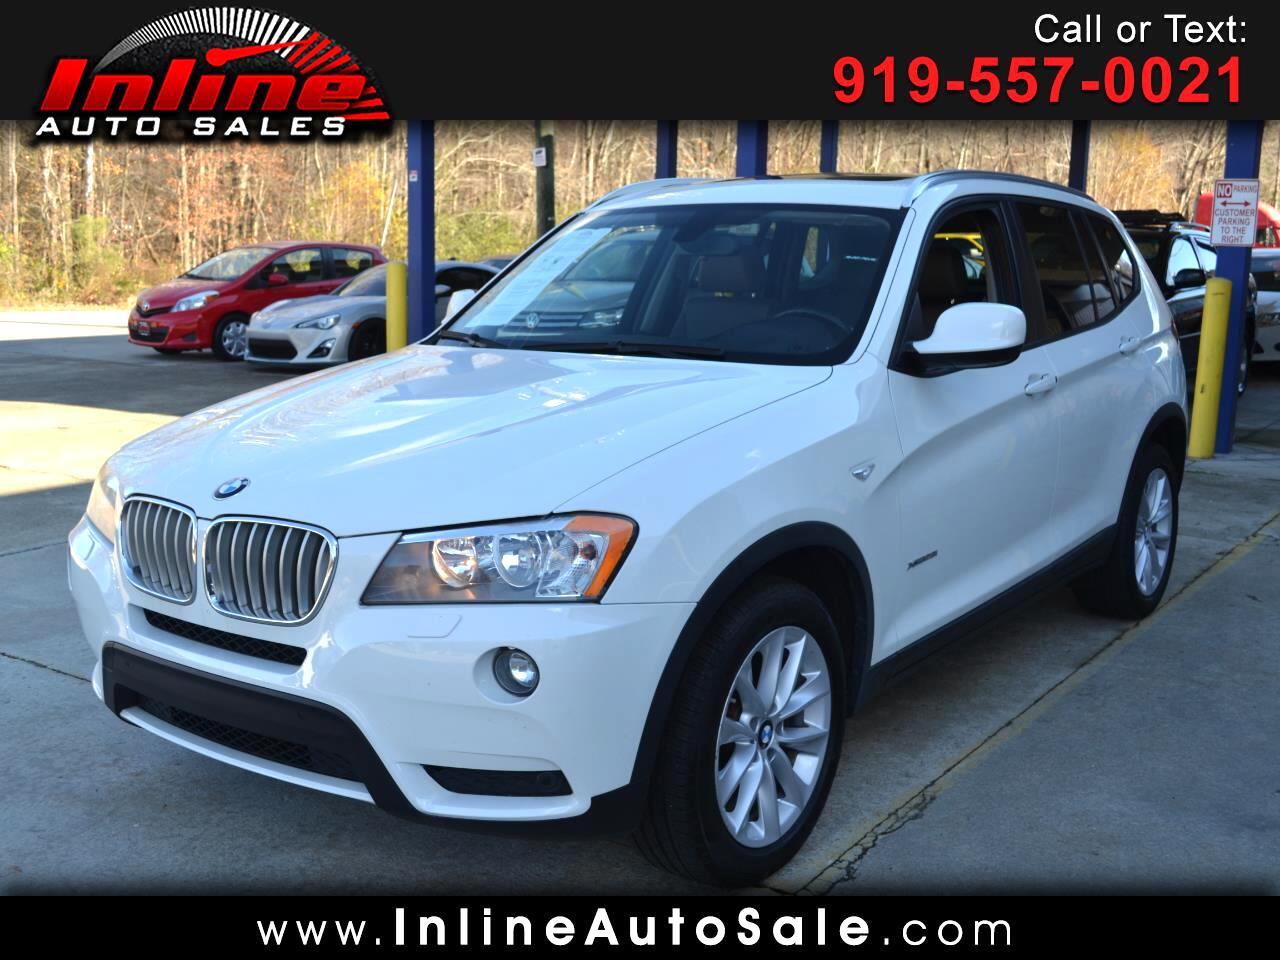 2014 BMW X3 AWD 4dr xDrive28i